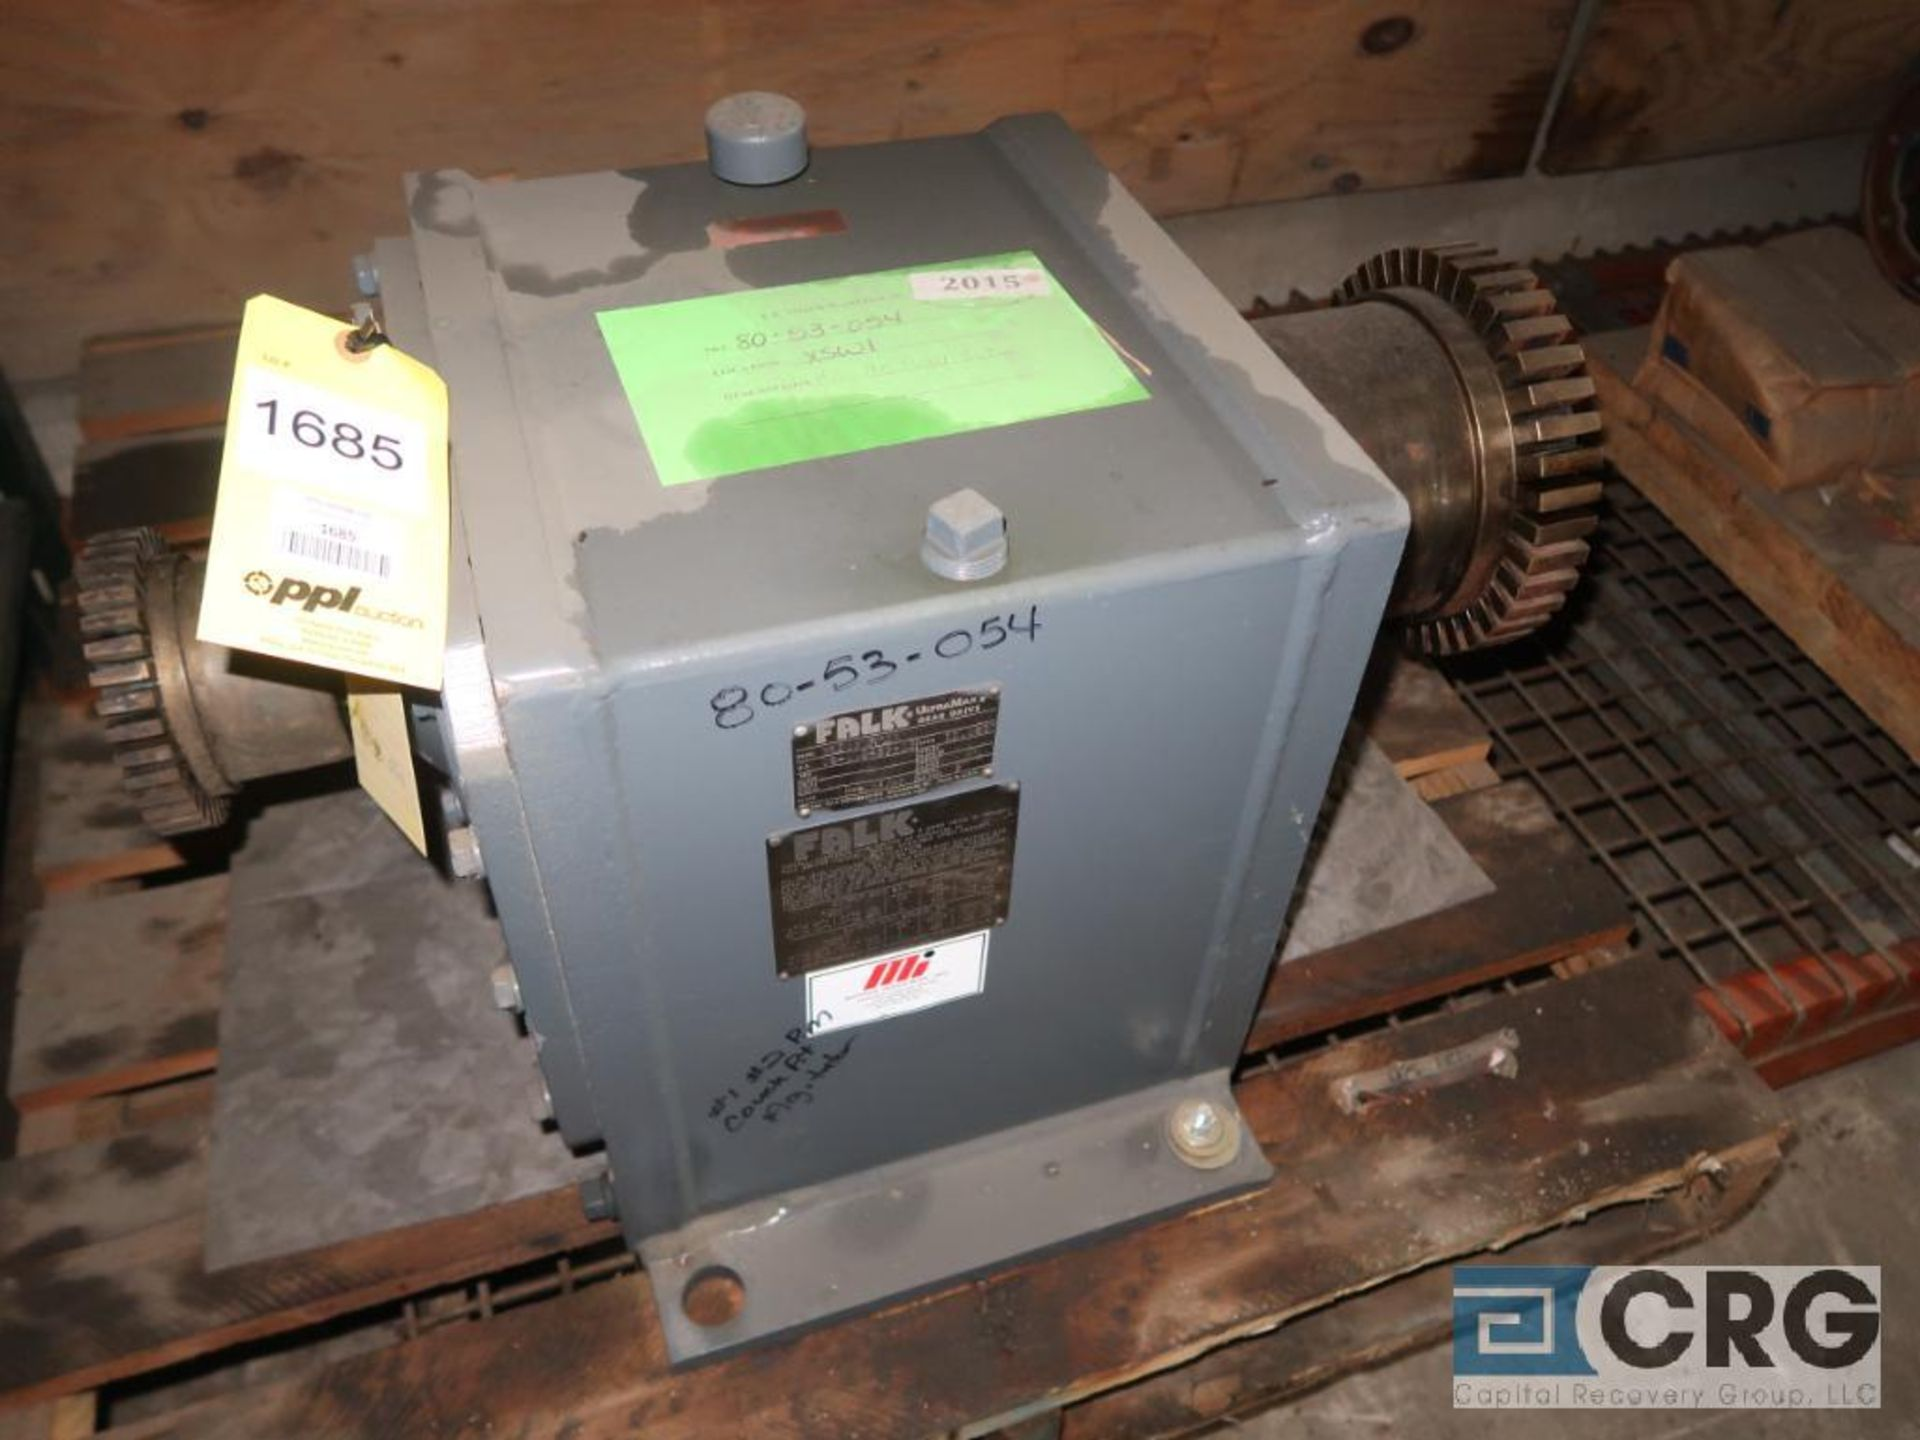 Falk RK 2070 FC2A gear drive, ratio-11.080, s/n 348903 (Next Bay Cage Area)